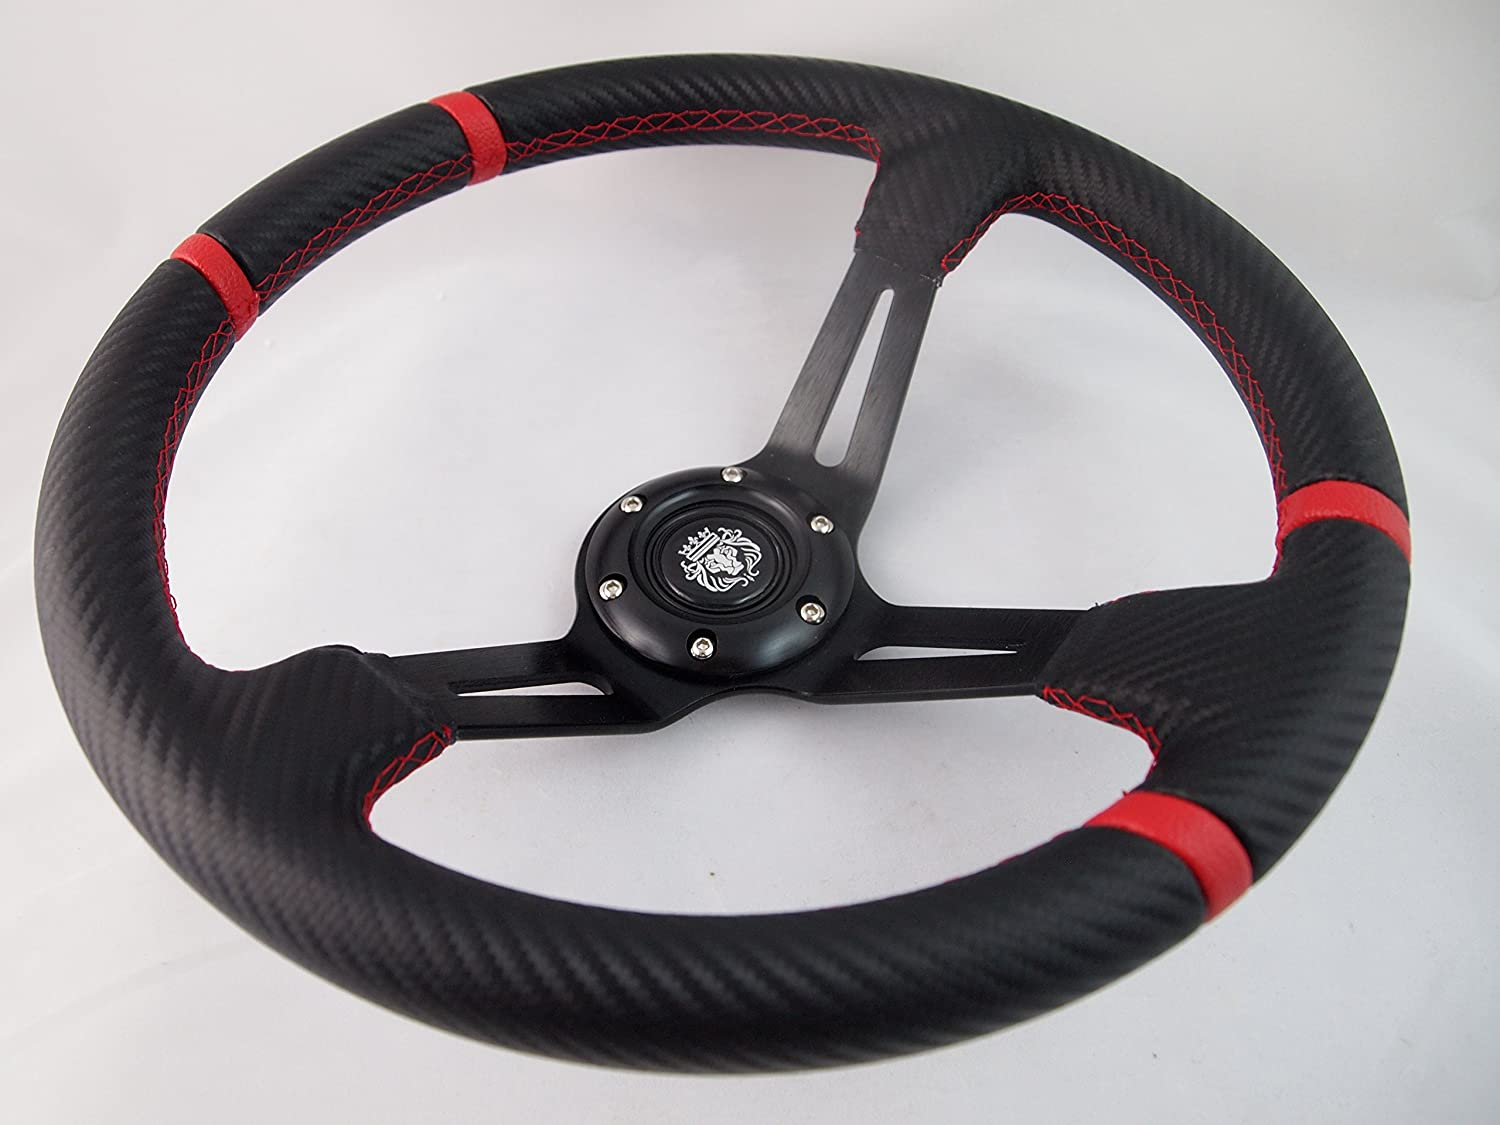 Red Black Steering Wheel with Adapter for RZR 570 800 900 1000